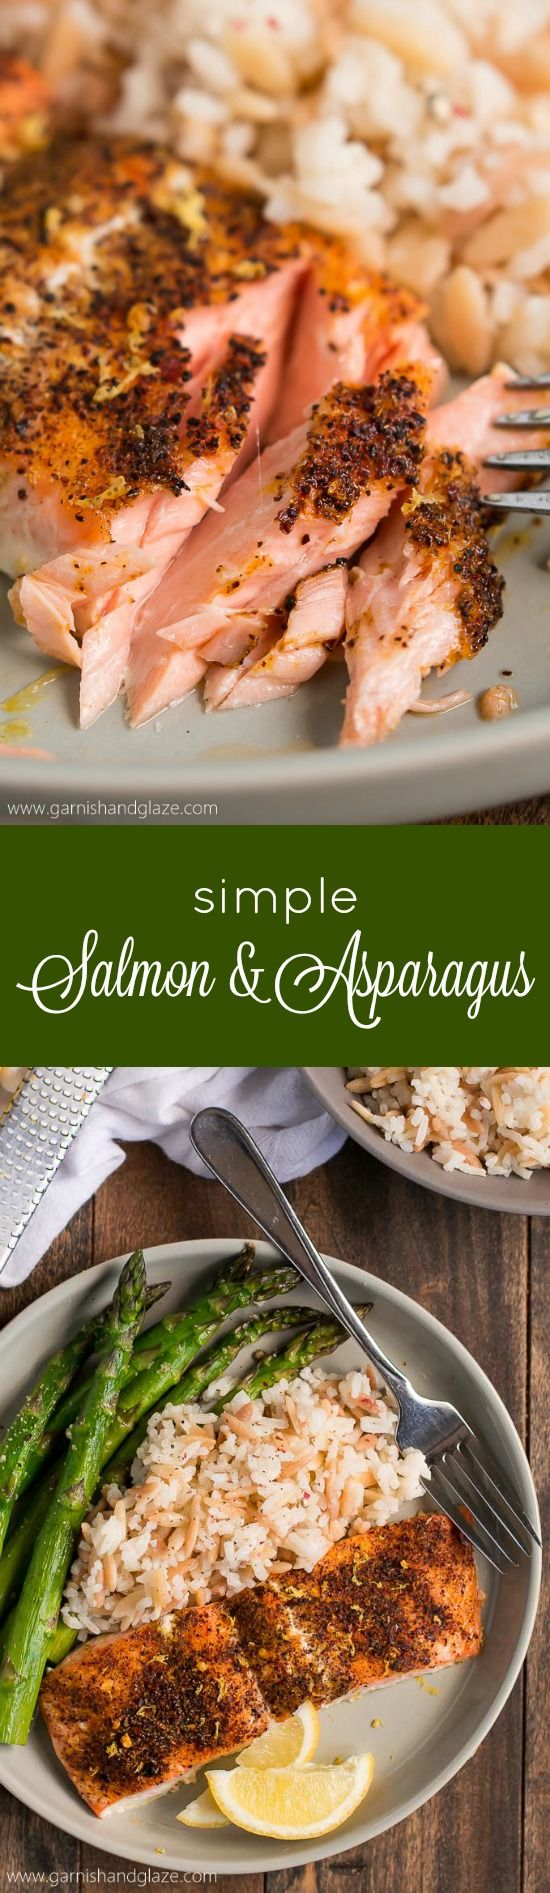 20 Minute Simple Salmon & Asparagus